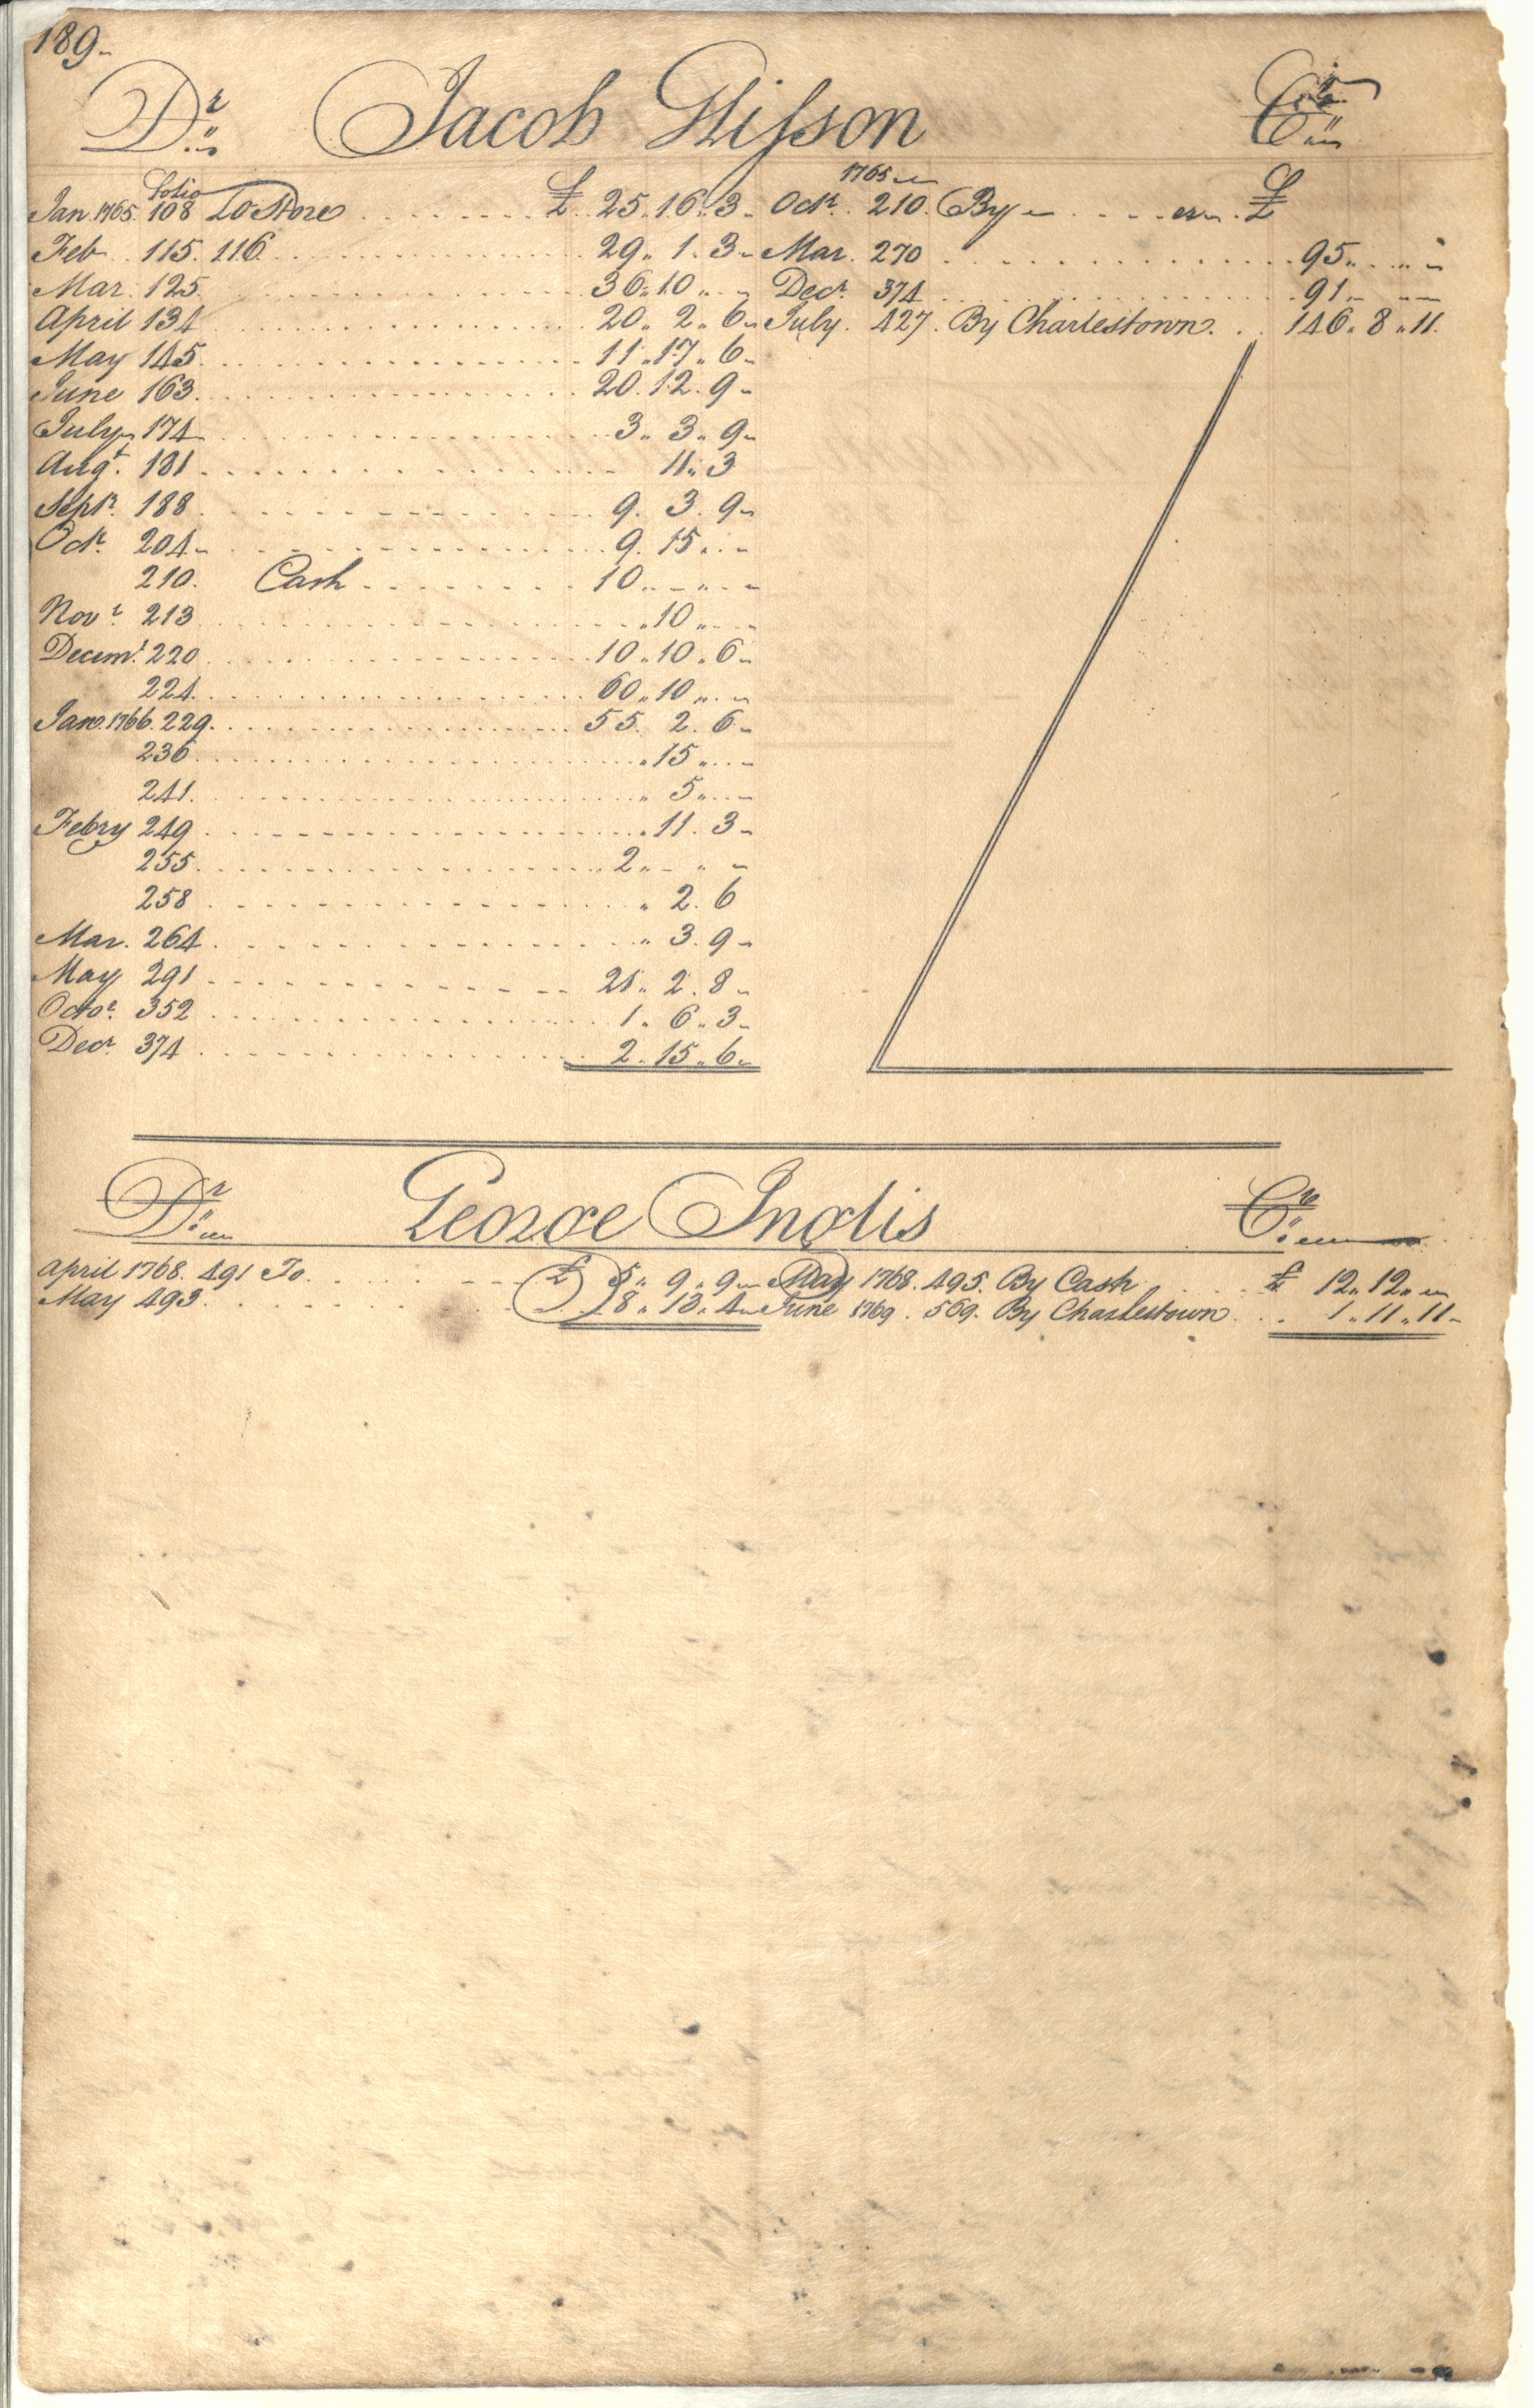 Plowden Weston's Business Ledger, page 189